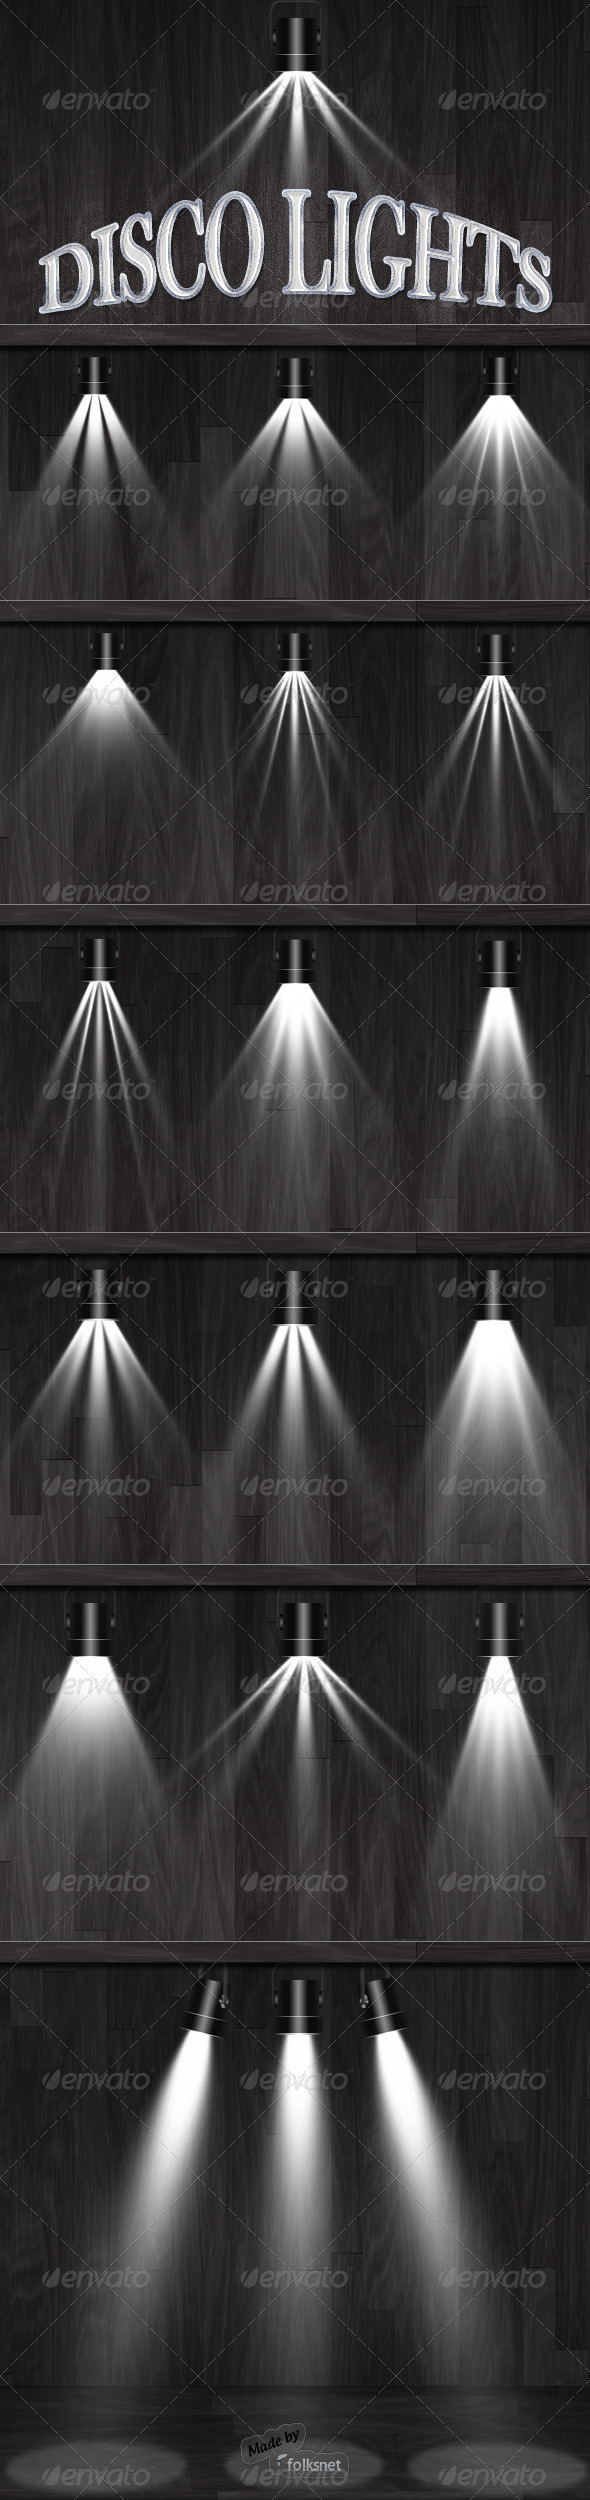 Disco Lights - Miscellaneous Graphics